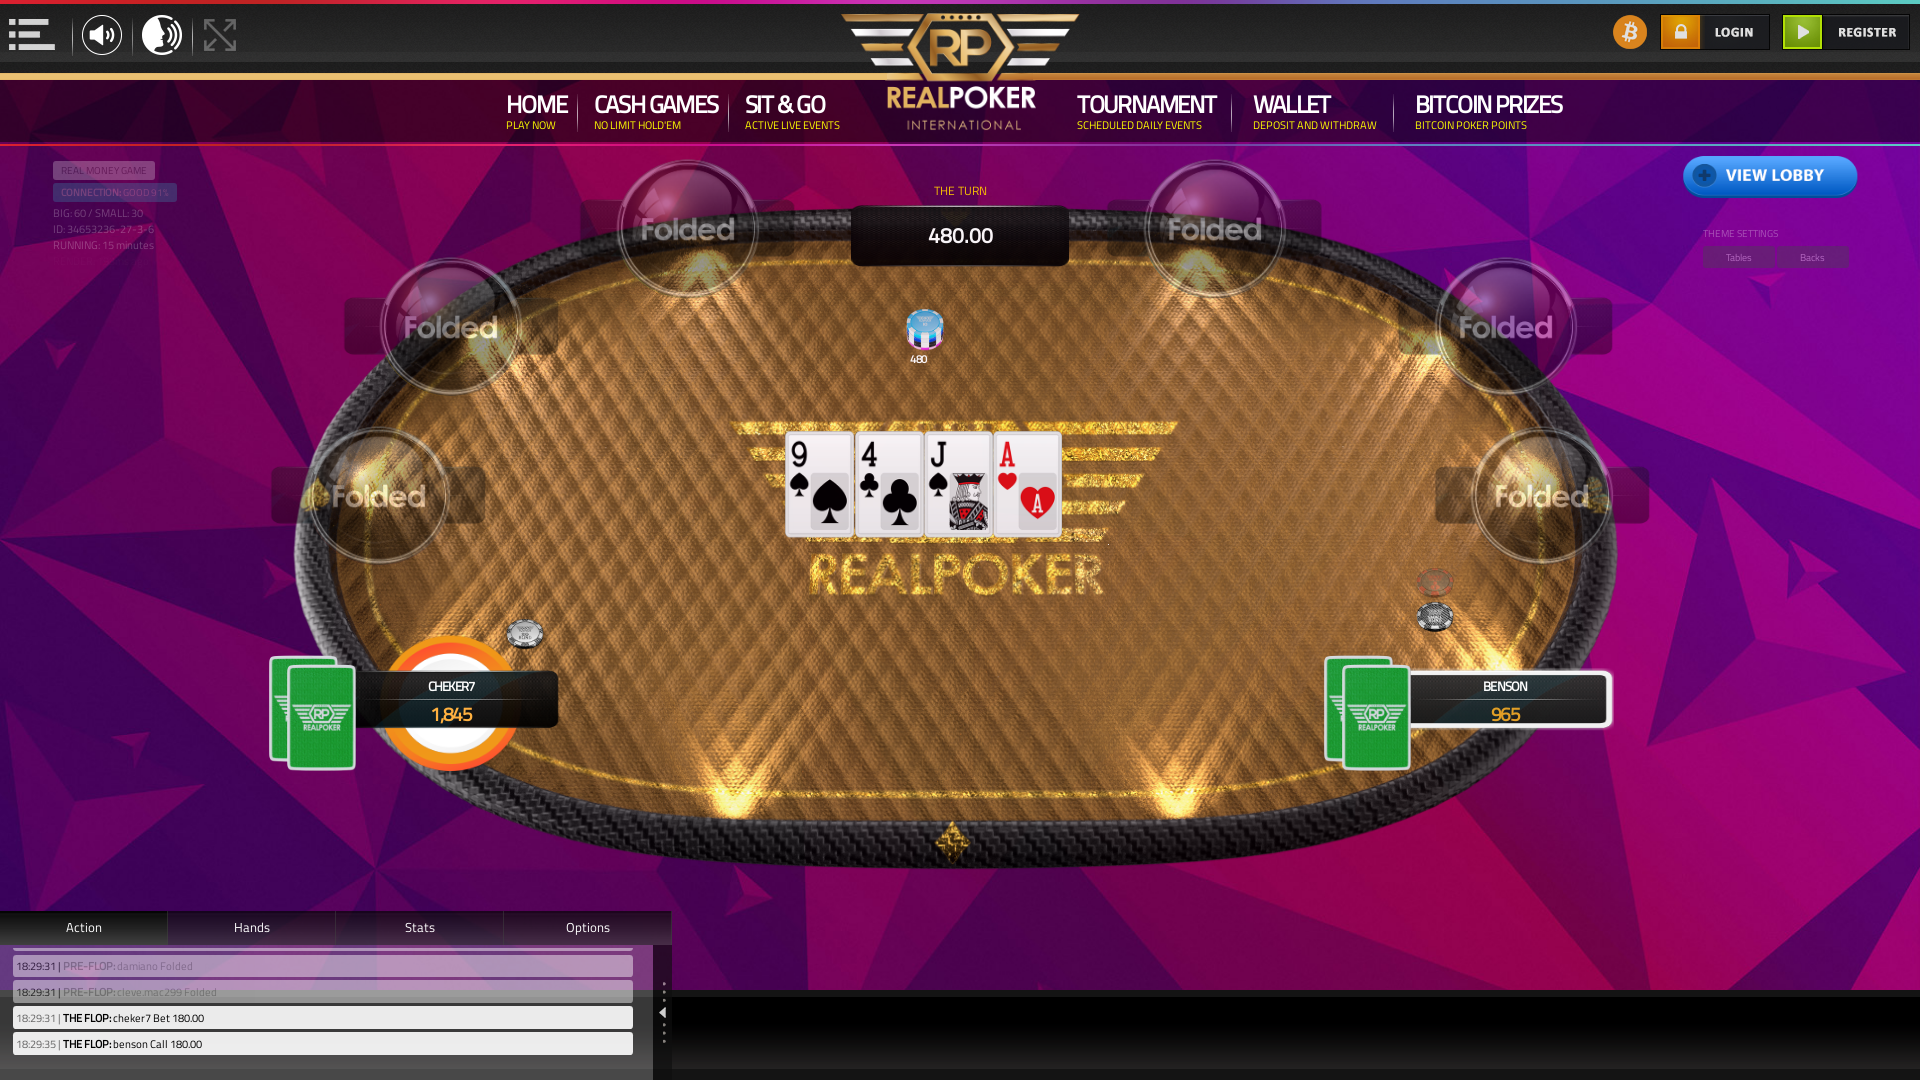 online poker on a 10 player table in the 14th minute match up